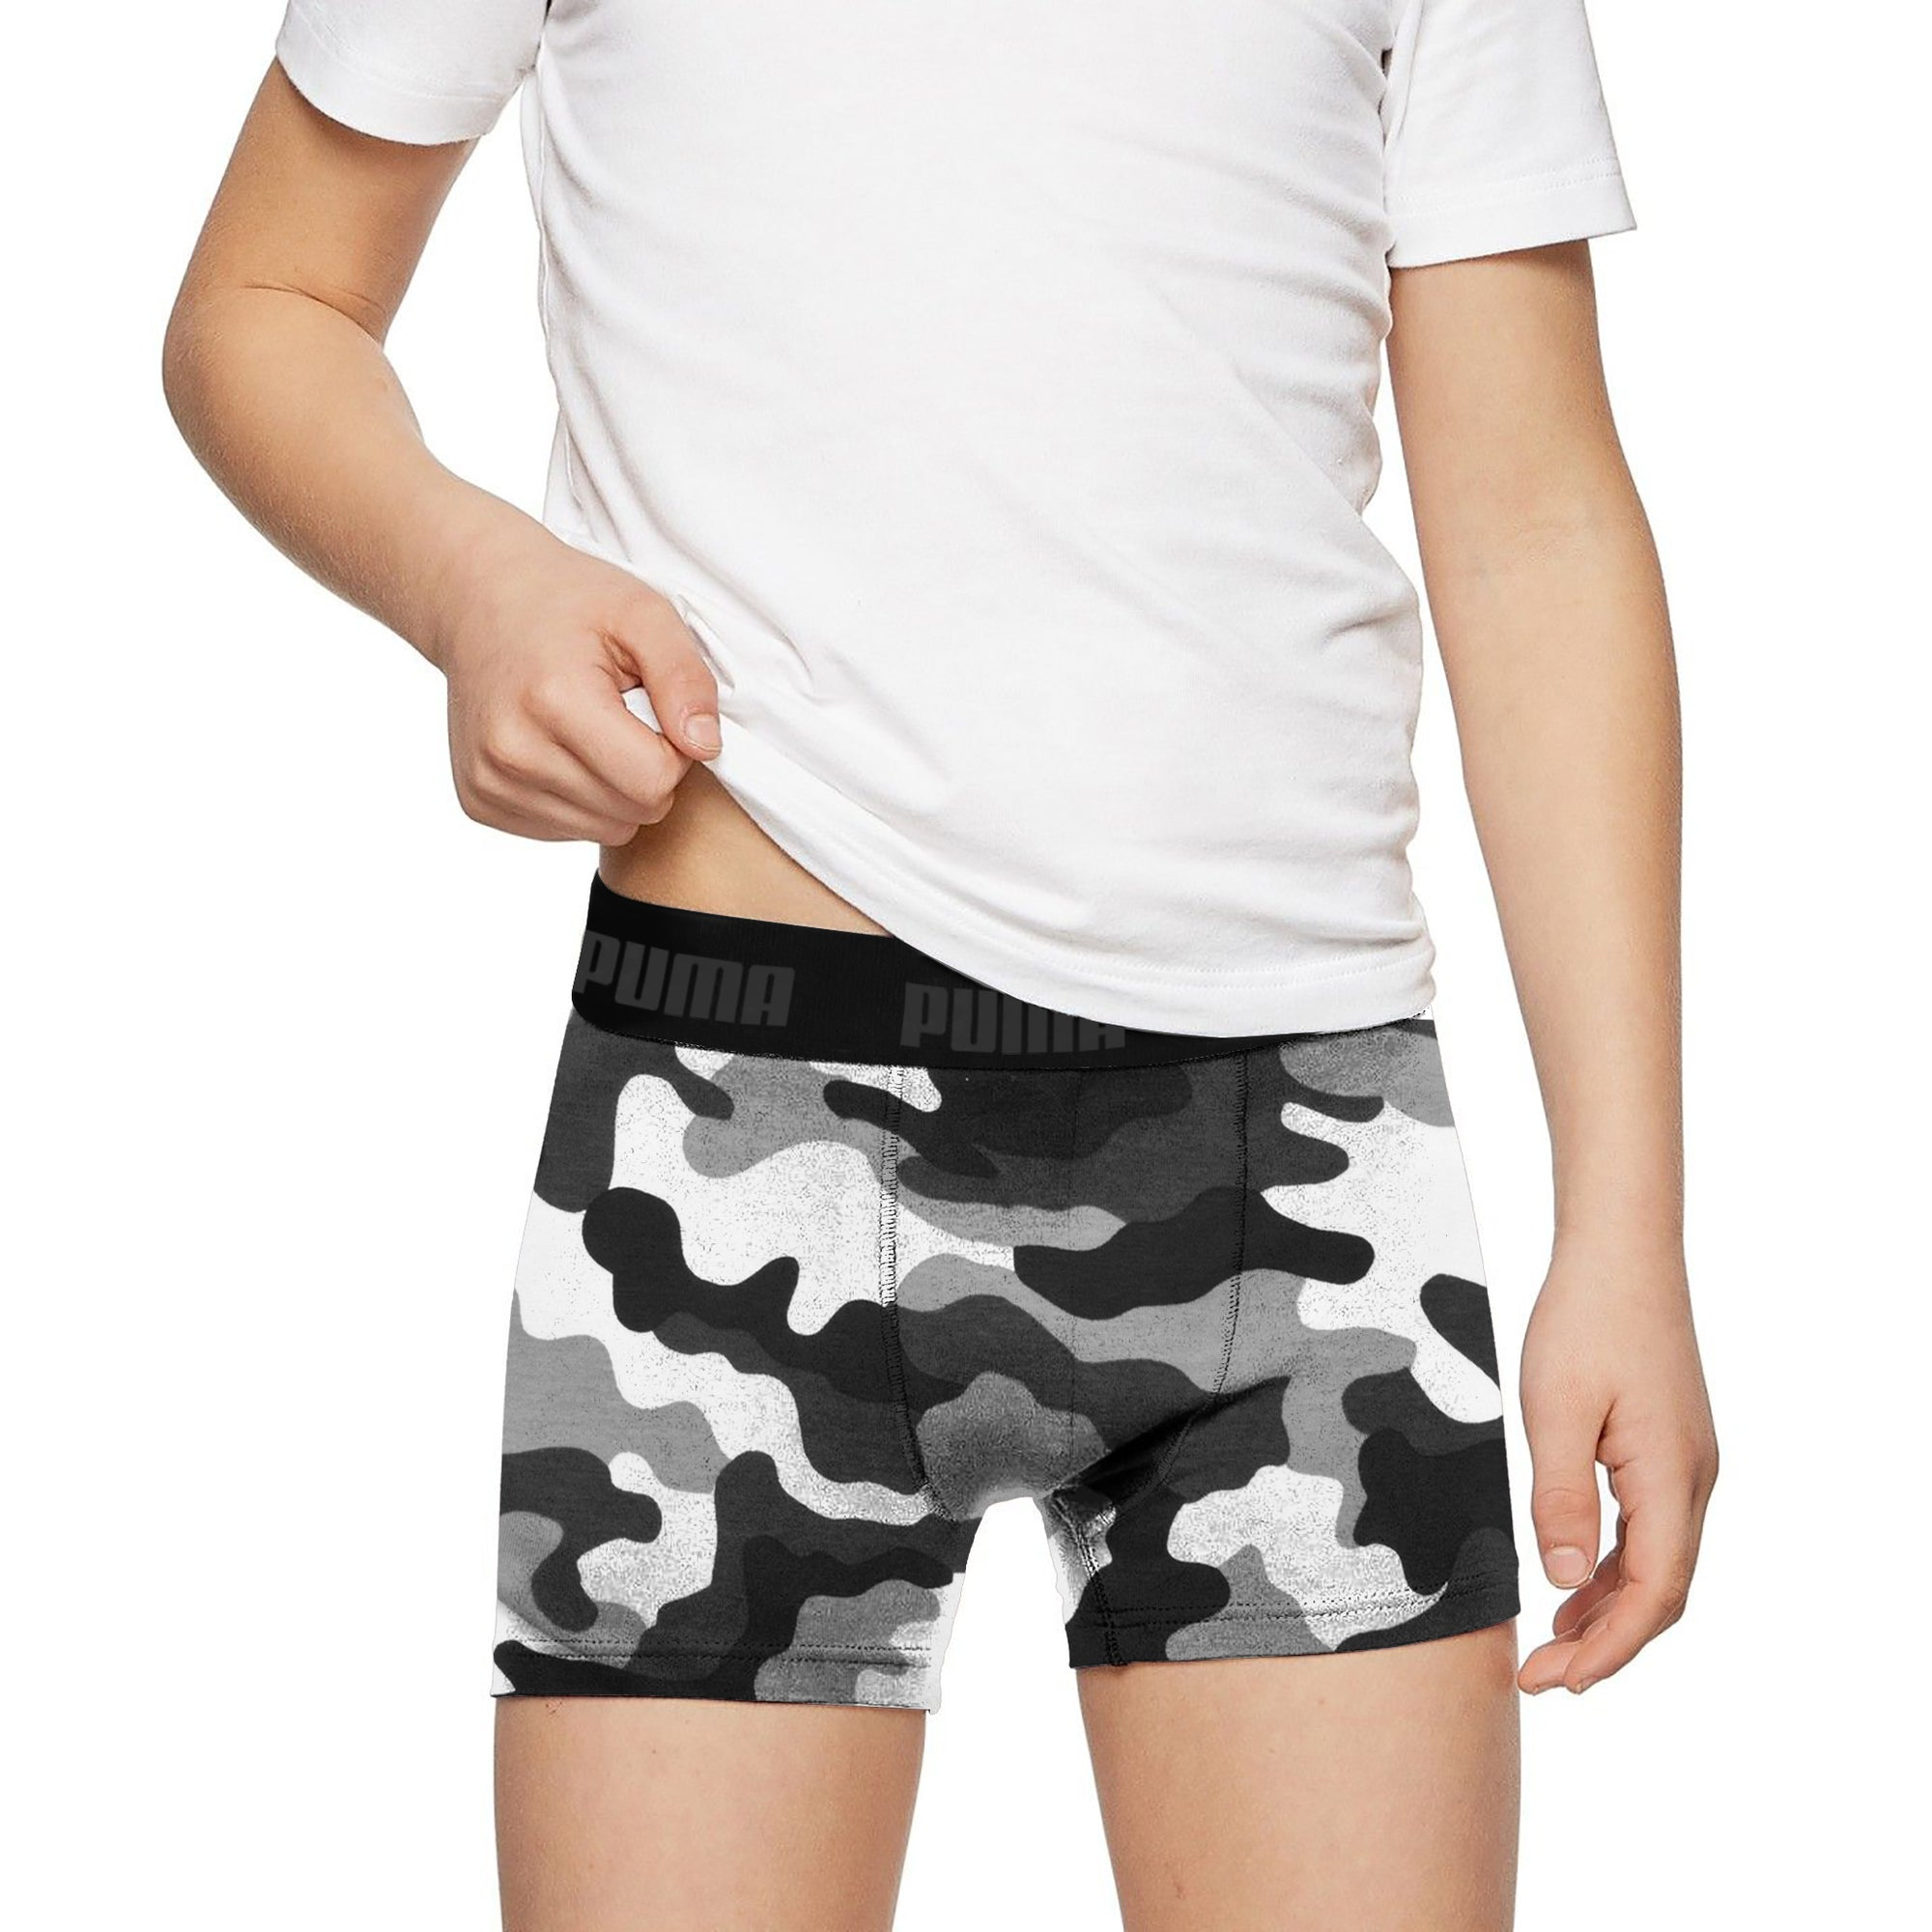 Puma Boxer Shorts For Kids-Camouflage-SP2715